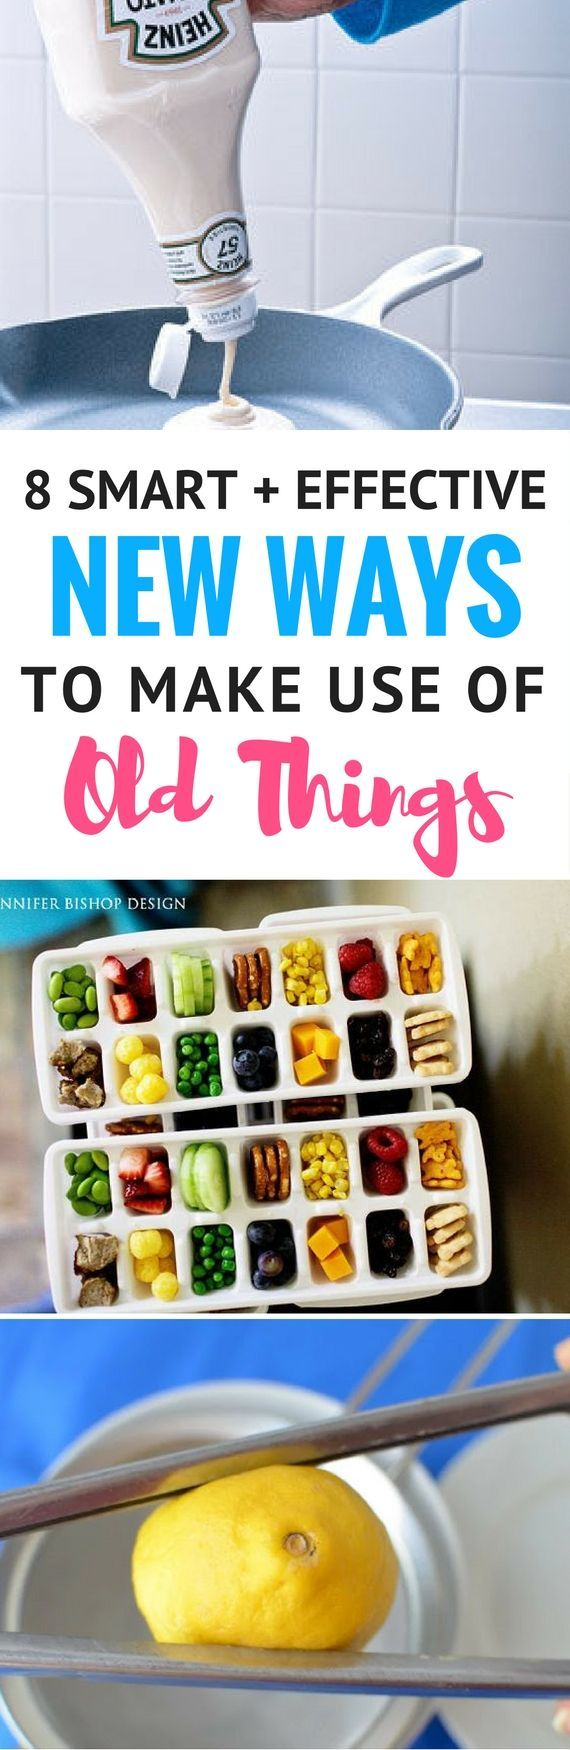 8 Creative And Fun New Ways To Use Old Things - Looking for ways to reuse ordinary things? Then these DIY Ideas will be perfect for you. You won't believe how AMAZING daily items can be. Really fantastic life hacks and home hacks.